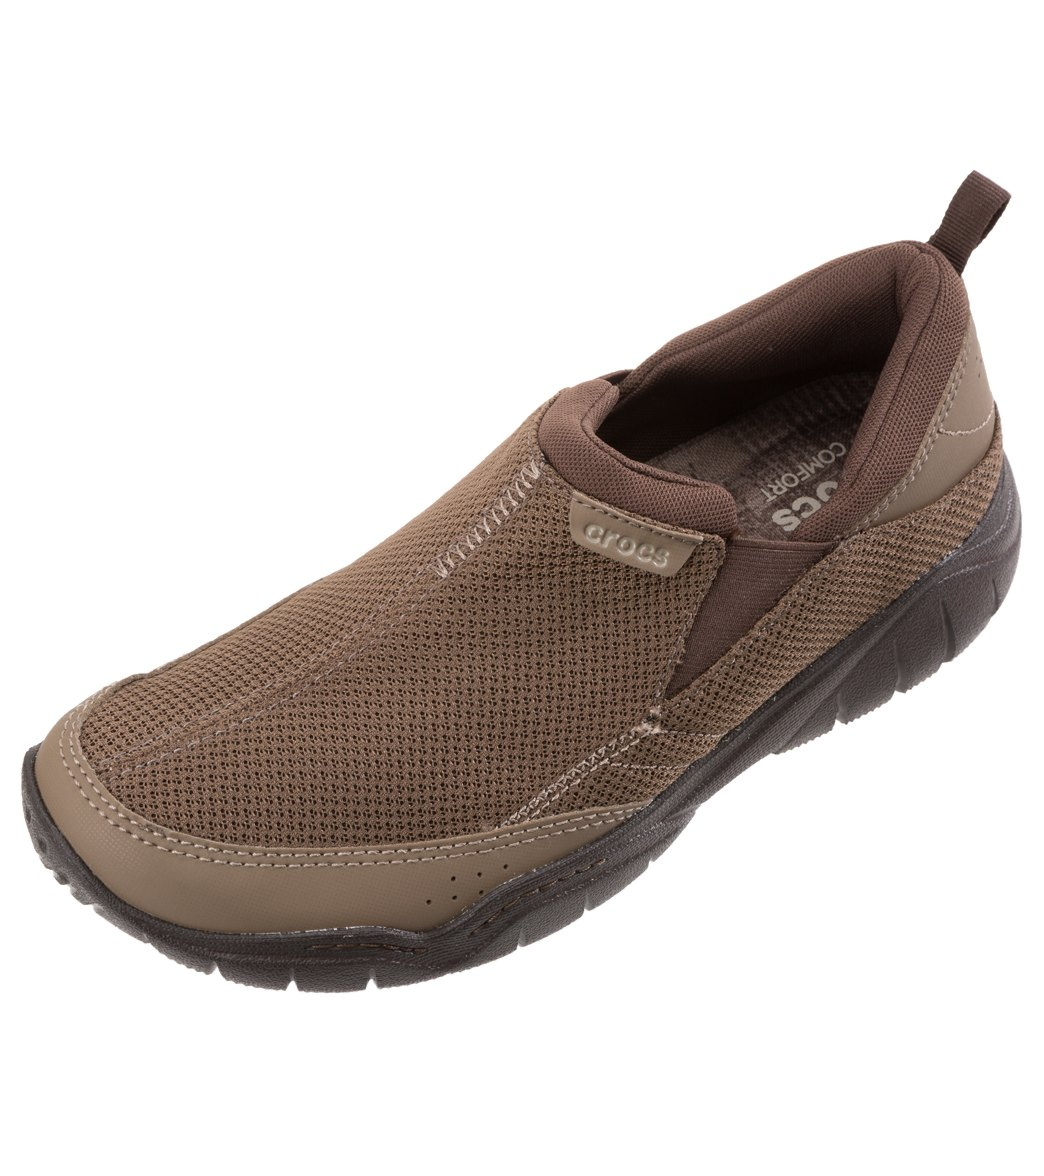 Crocs Men's Swiftwater Mesh Moc Slip On at SwimOutlet.com - Free Shipping